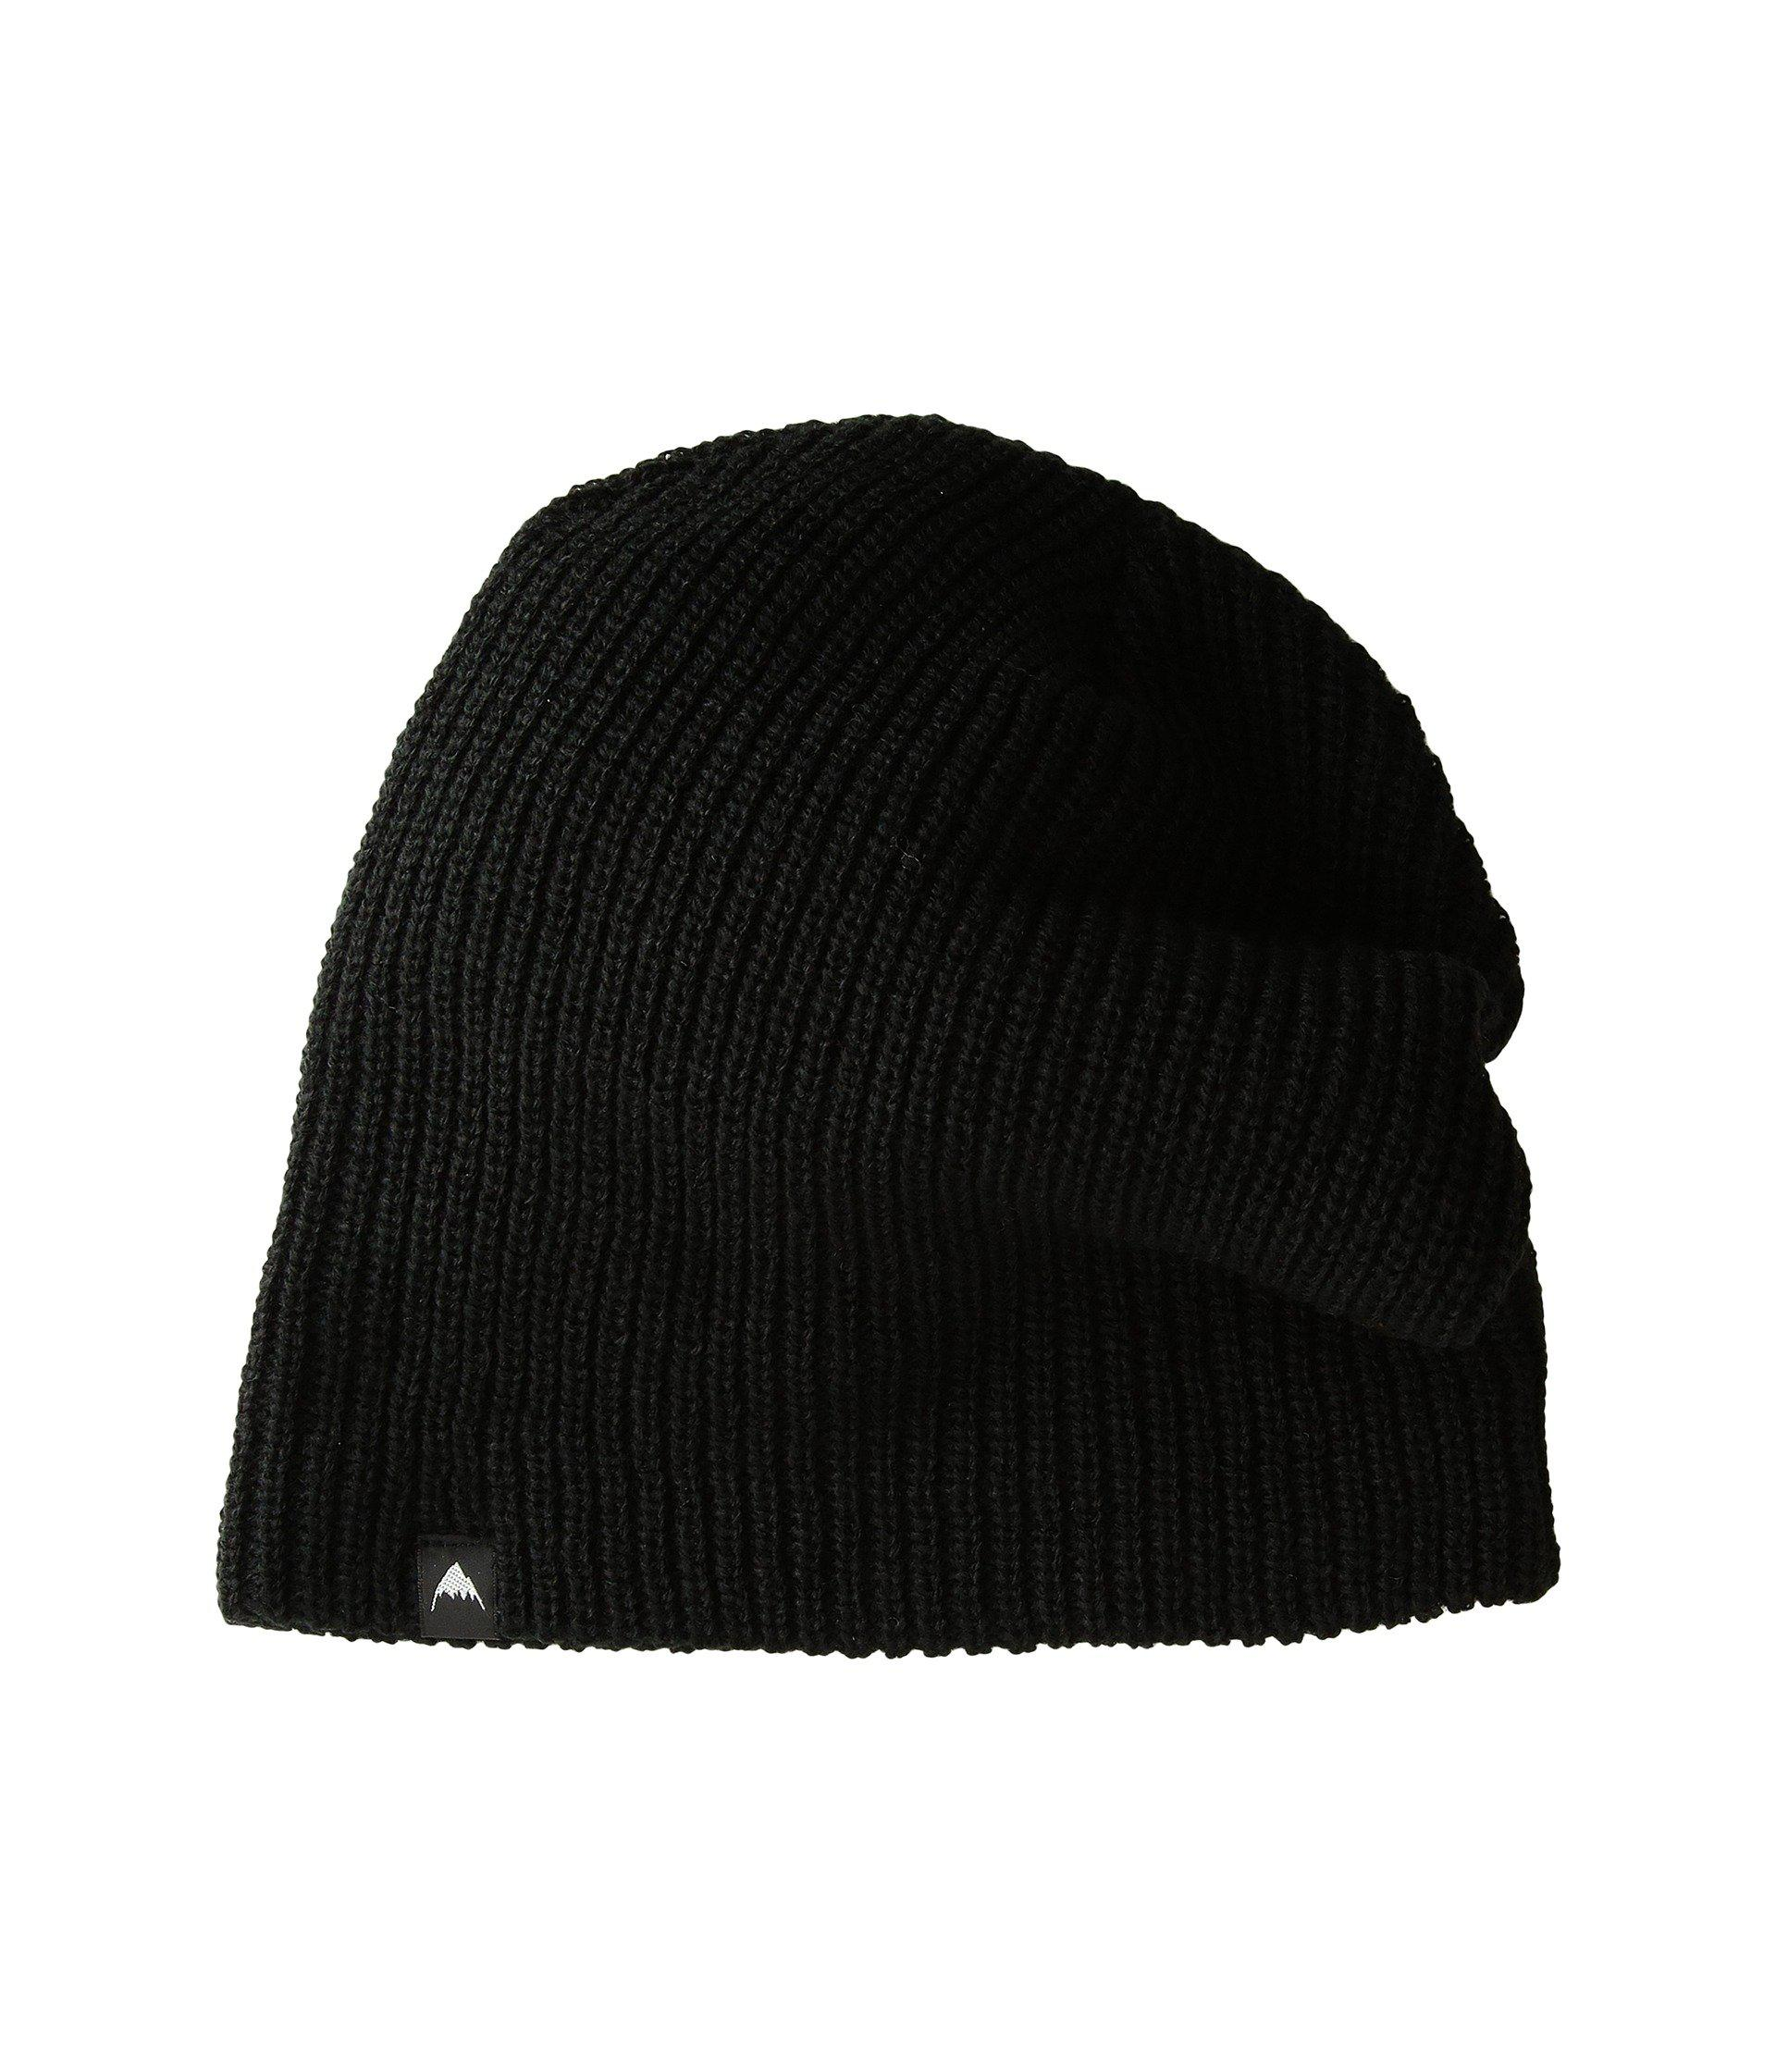 f873ef702a1 Lyst - Burton All Day Long Beanie (hawk) Beanies in Black for Men